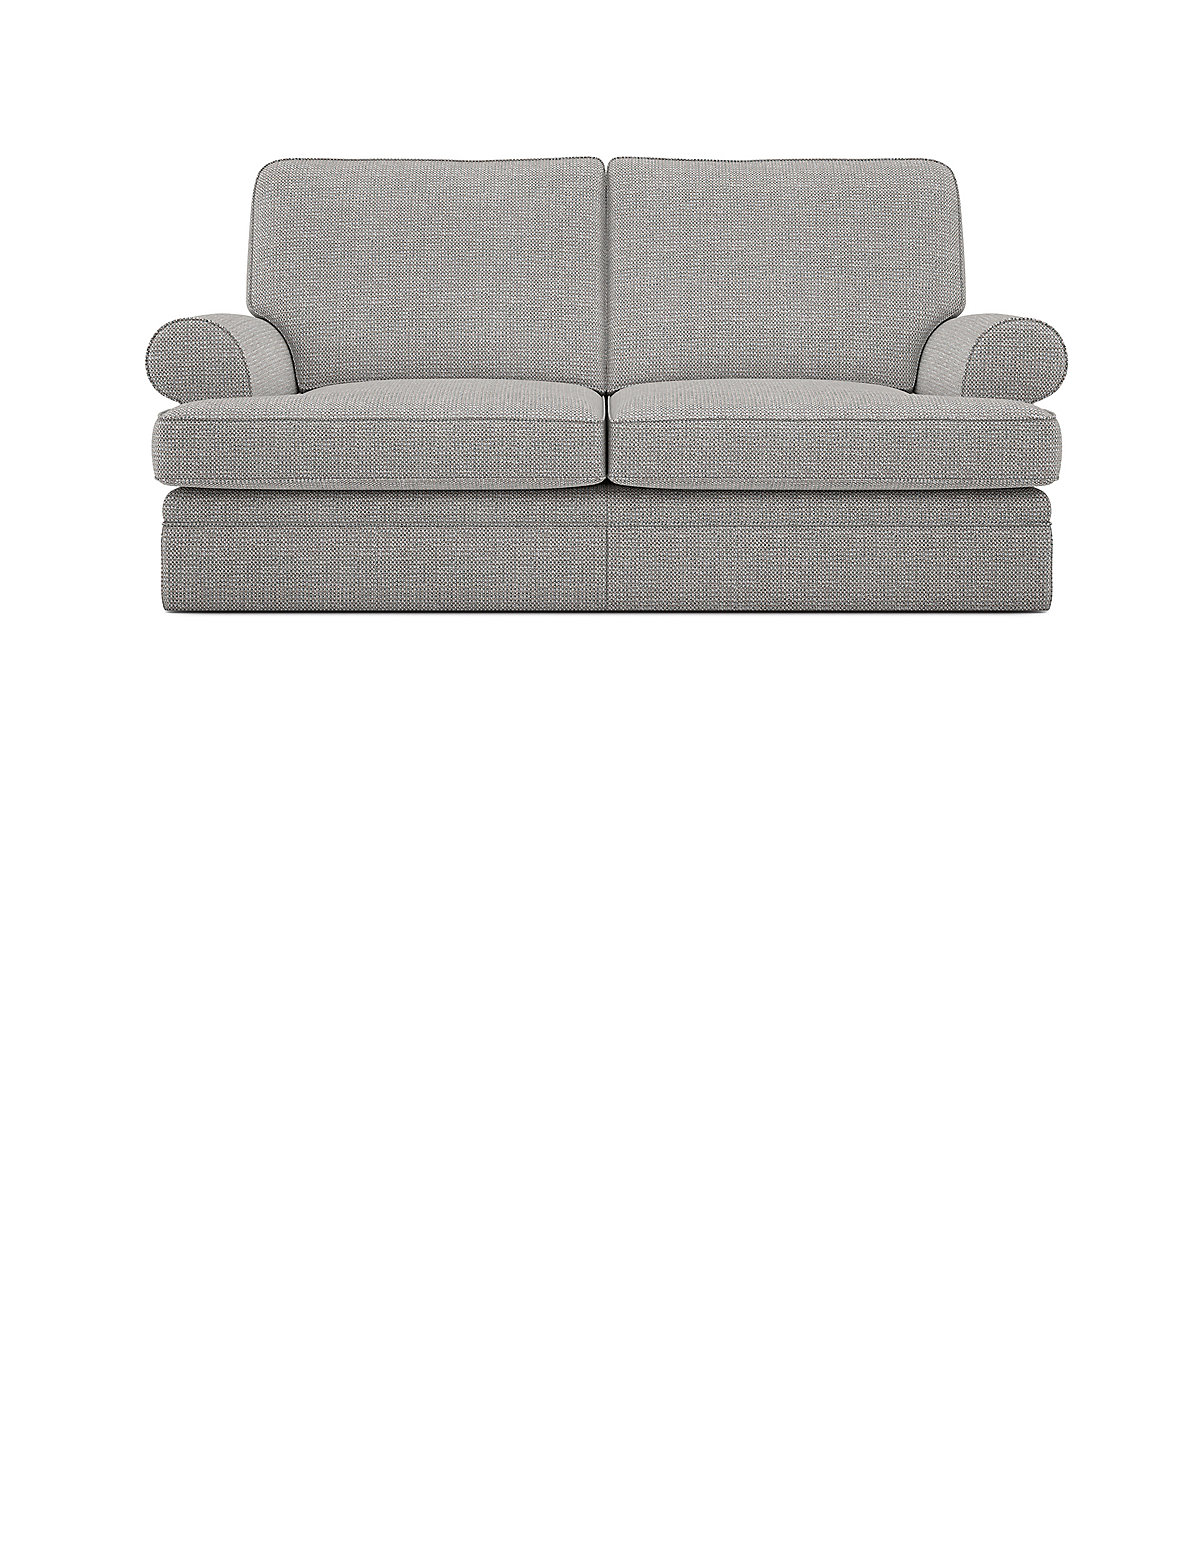 Berkeley Small Sofa.